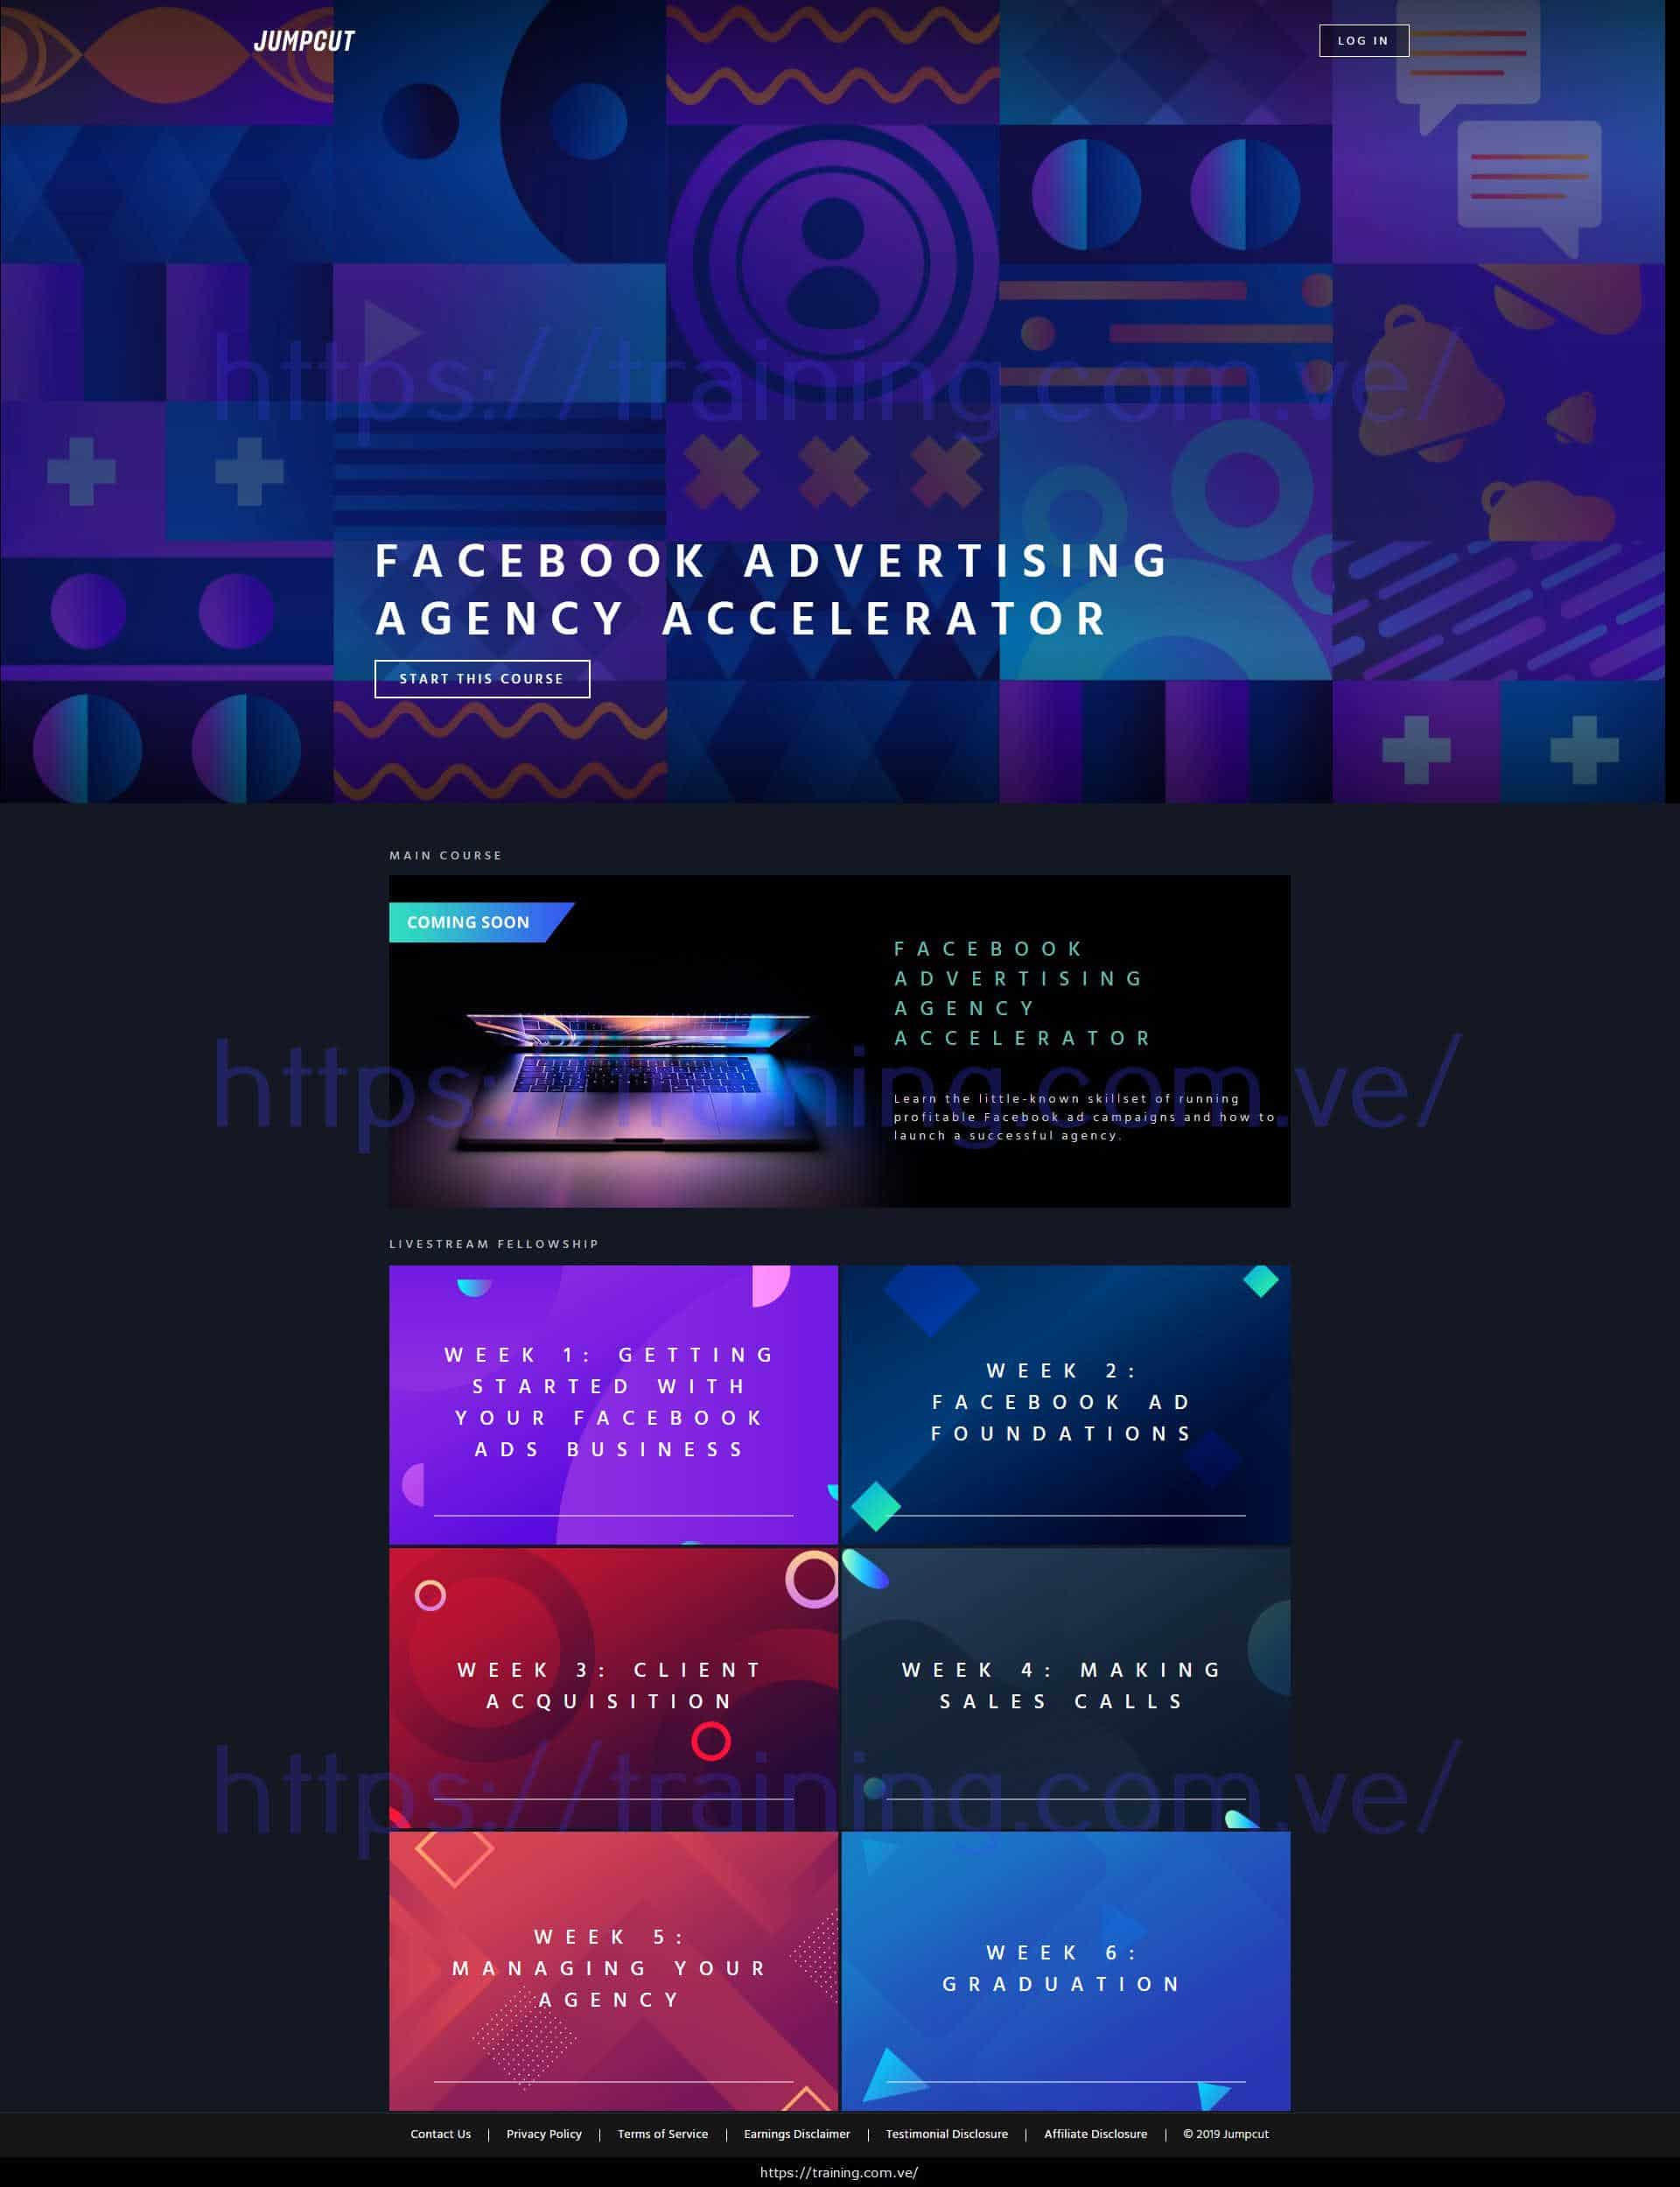 Facebook advertising agency by Jumpcut Download